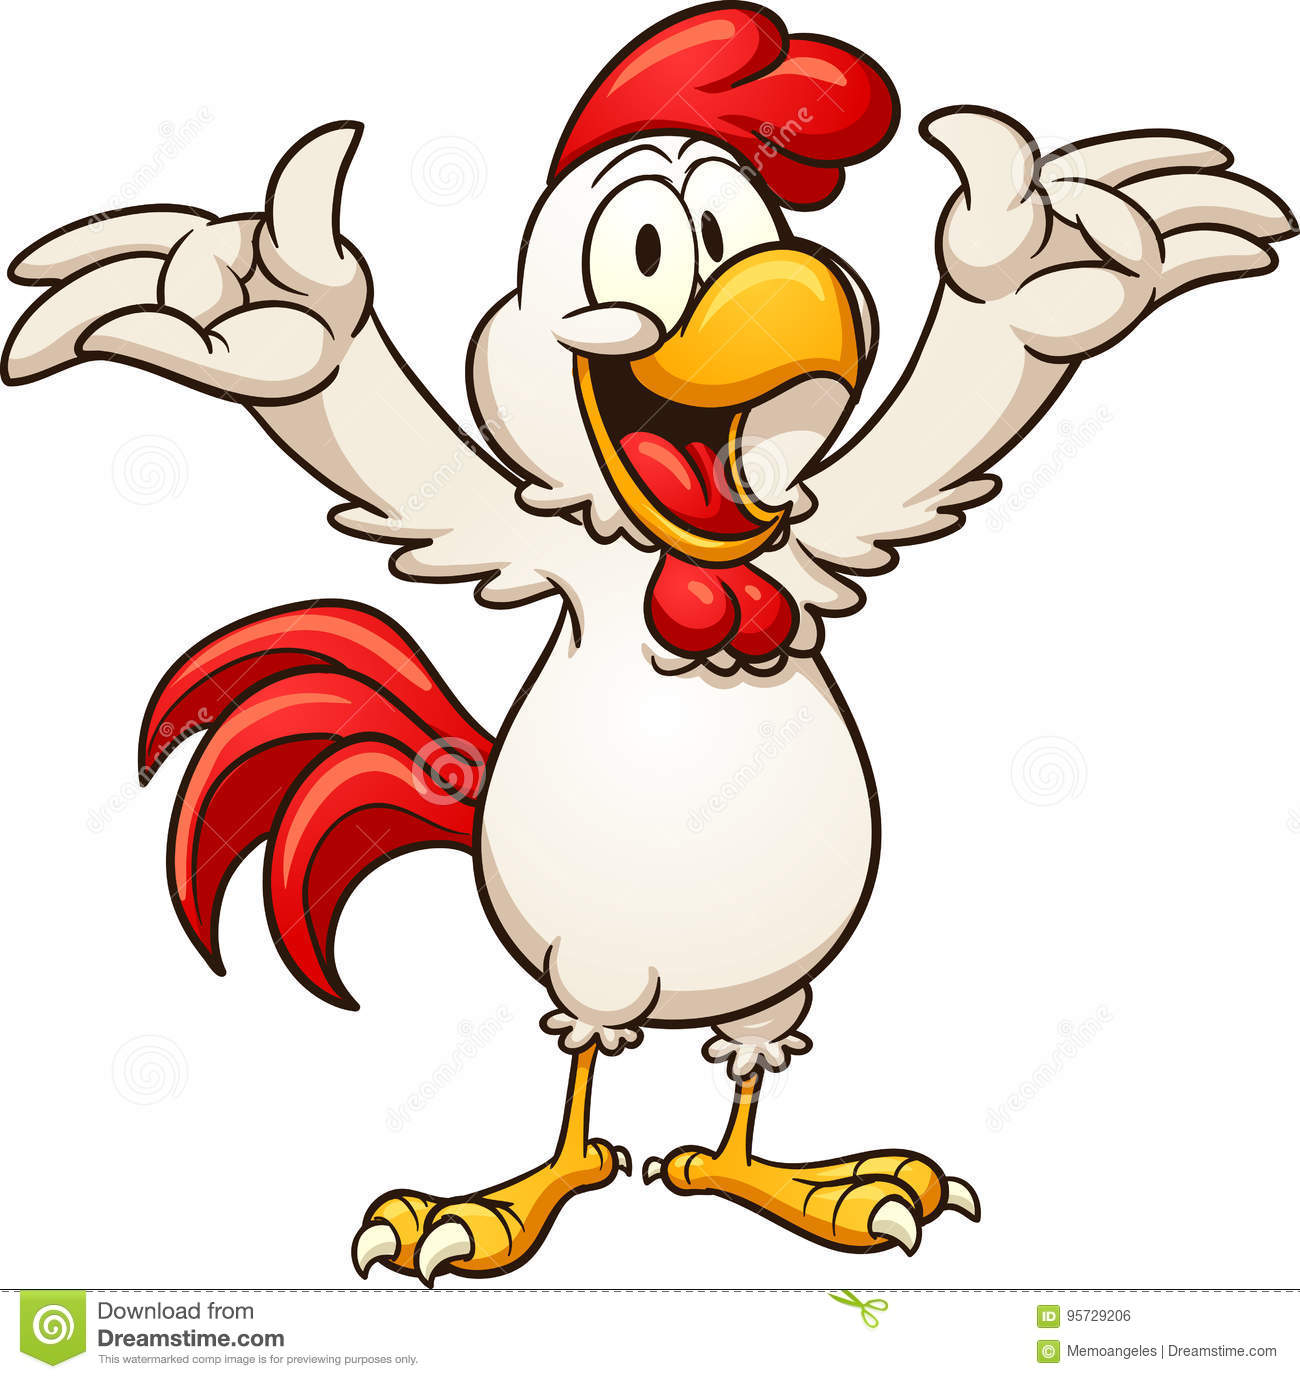 Happy chicken stock vector. Illustration of happy, rooster ...